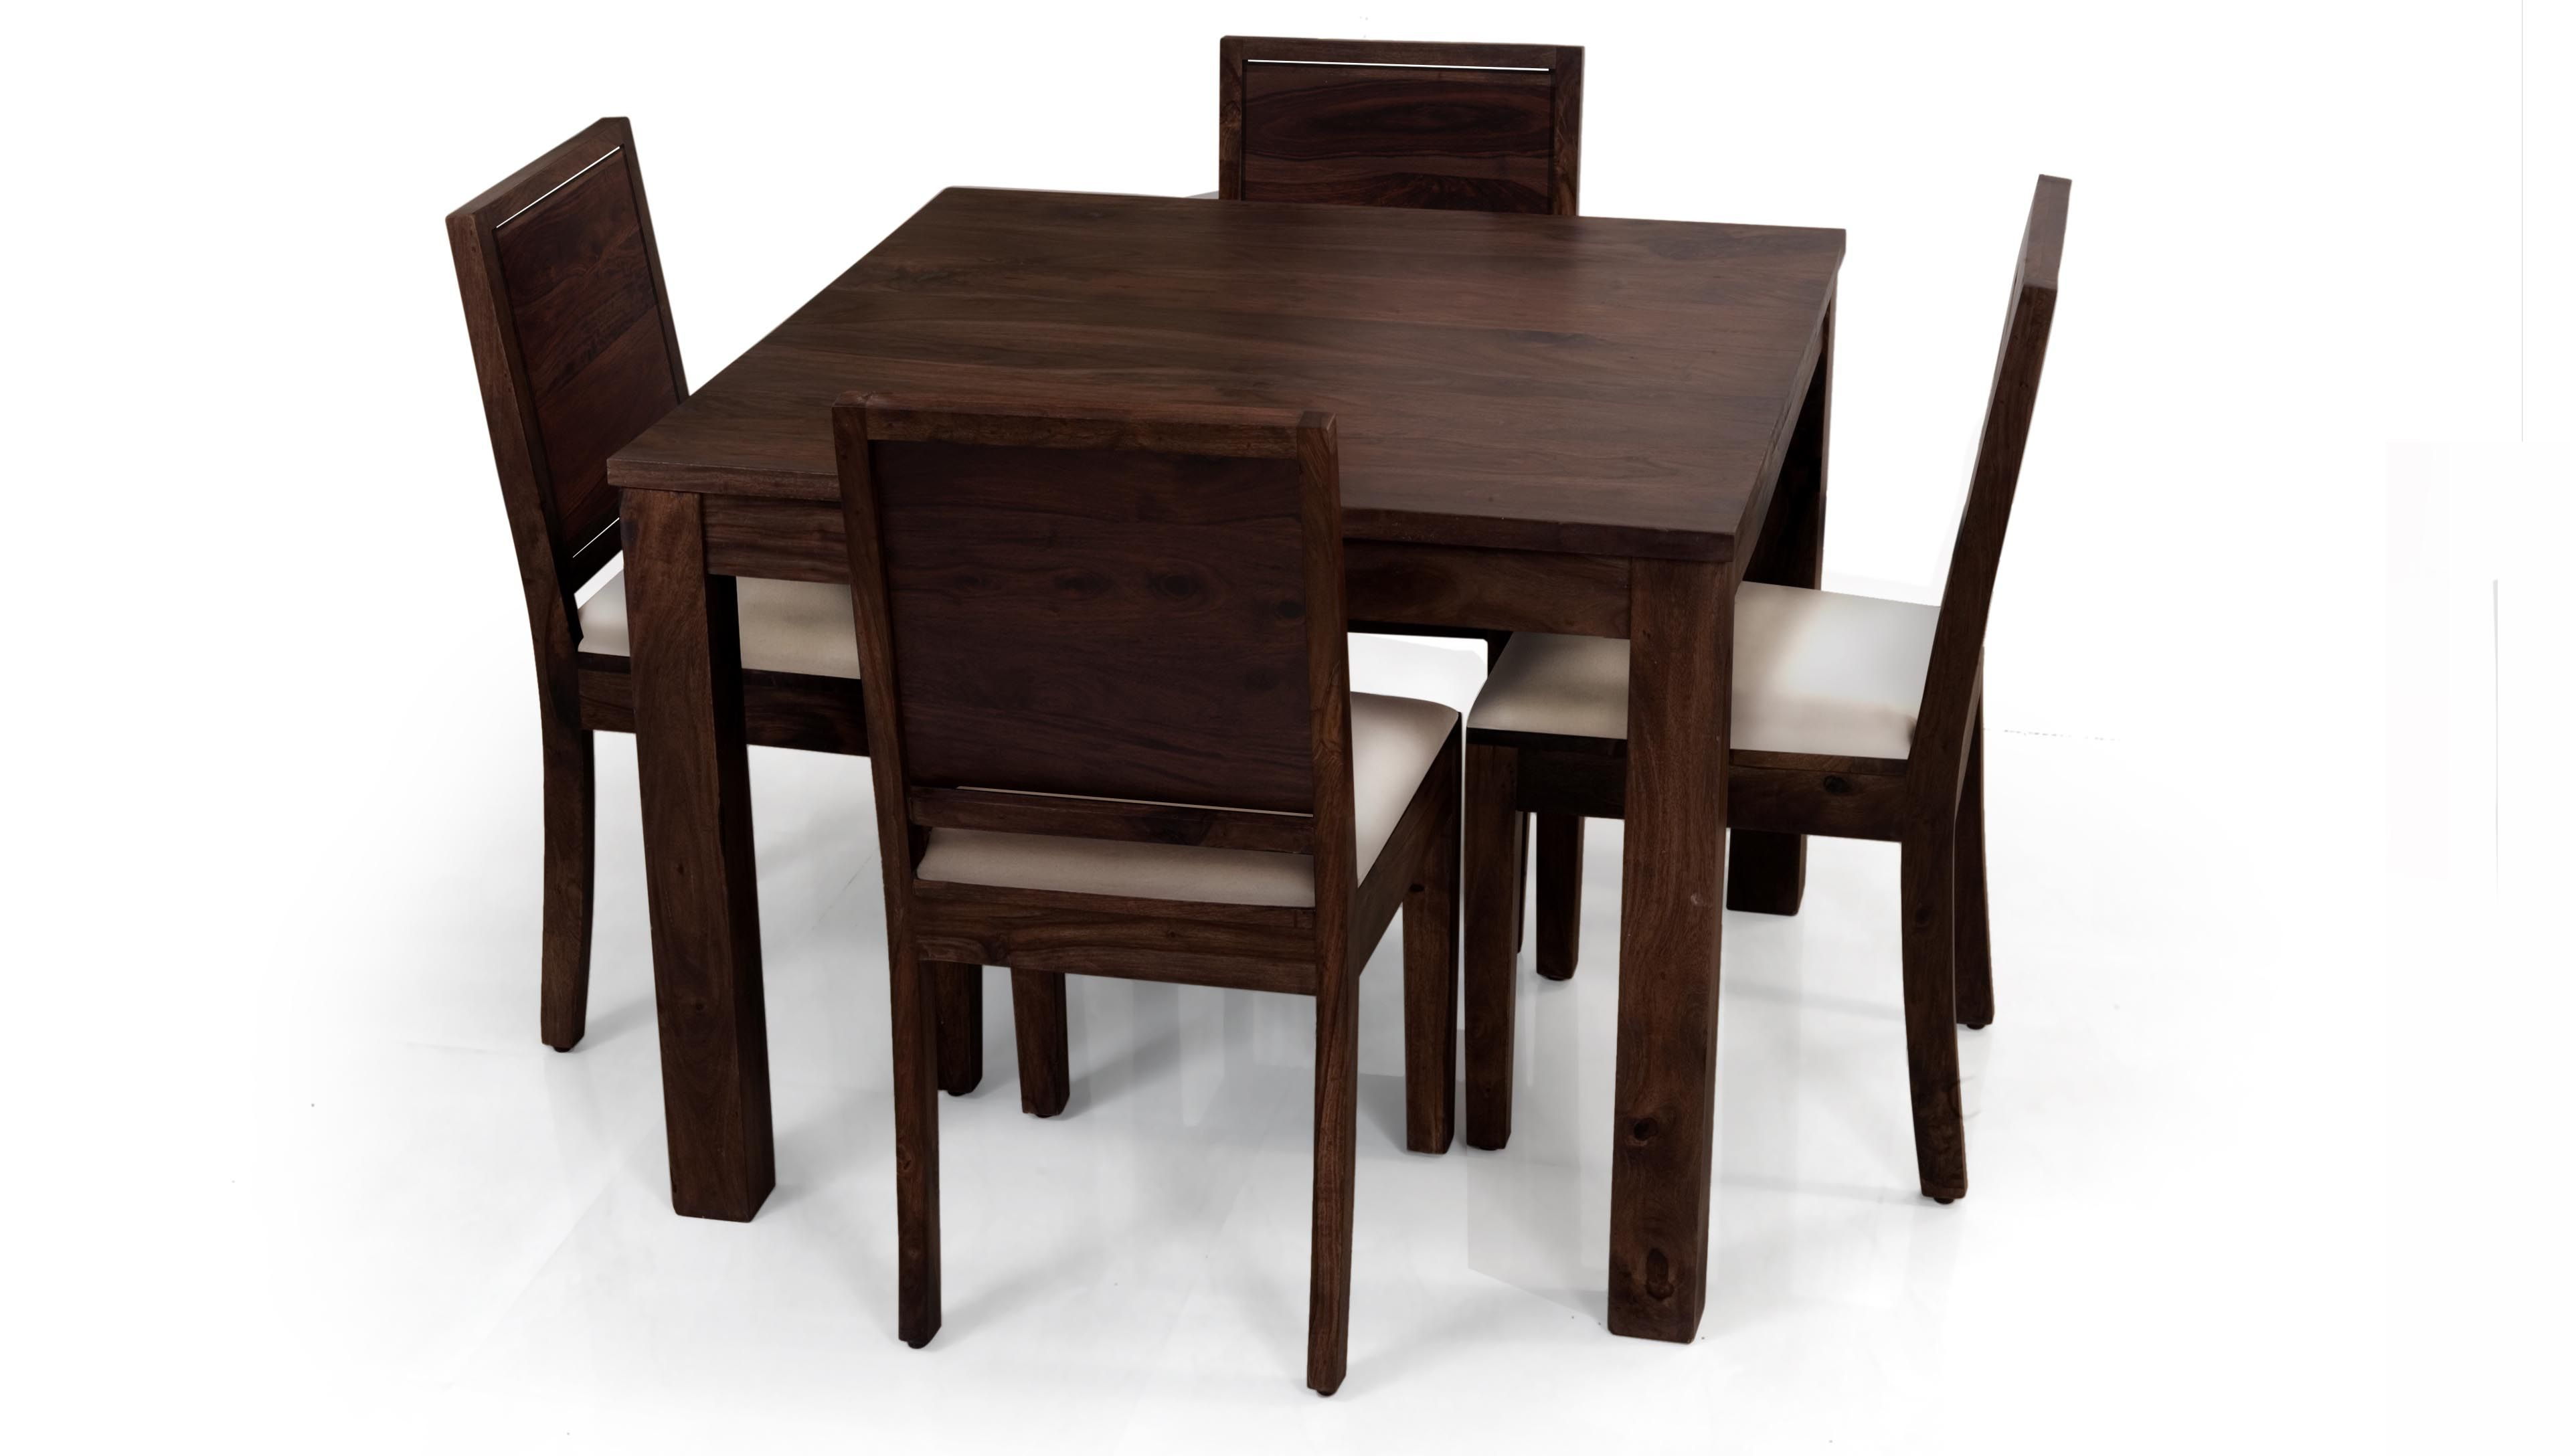 And Decor Your Dining Room With Awesome Design Ever Every Table Captivating Cheap Dining Room Chairs Set Of 6 Inspiration Design